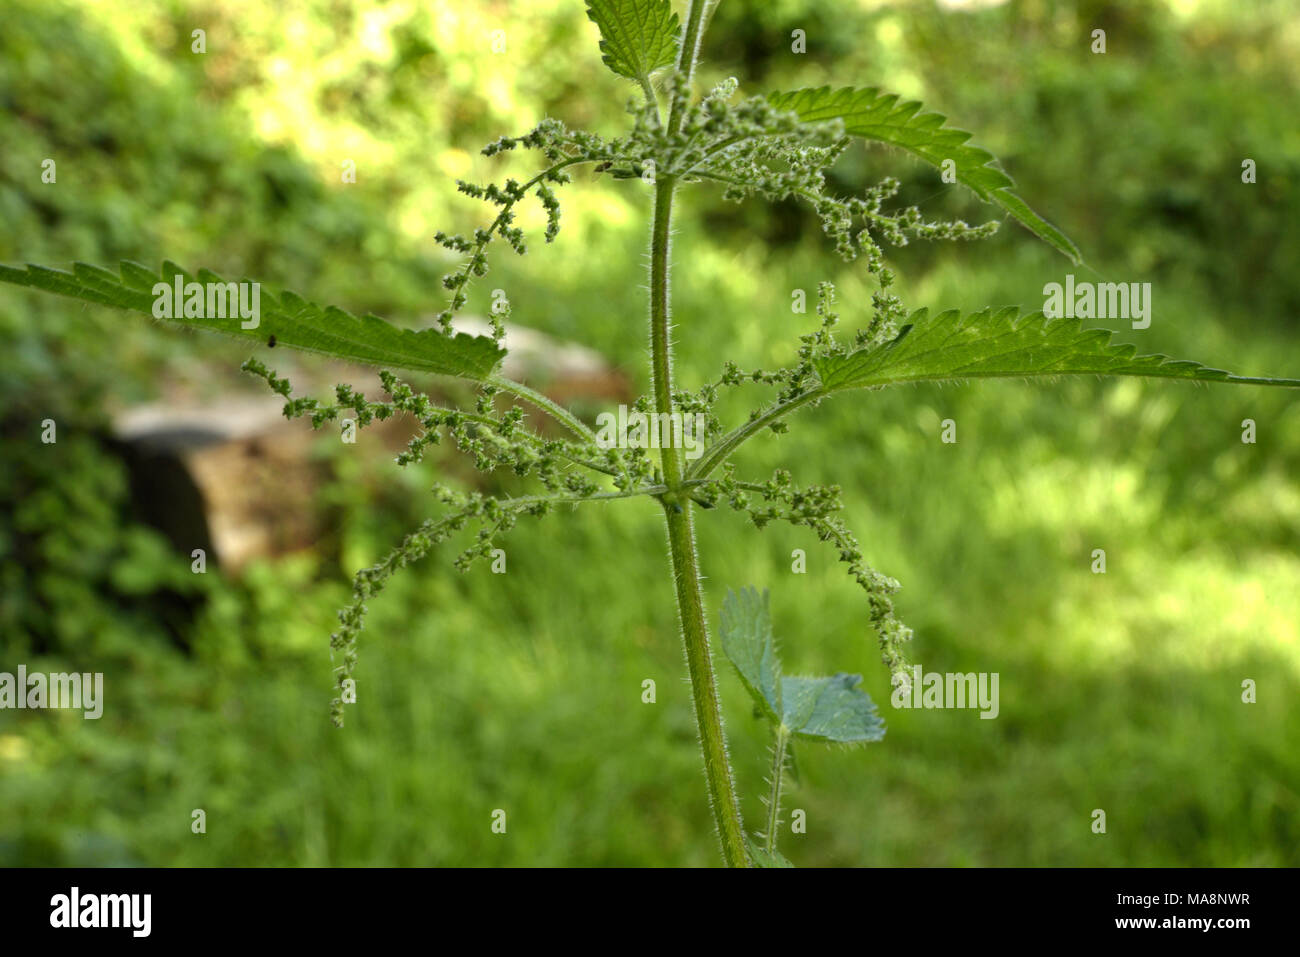 Urtica dioica, Common Nettle Flowers - Stock Image